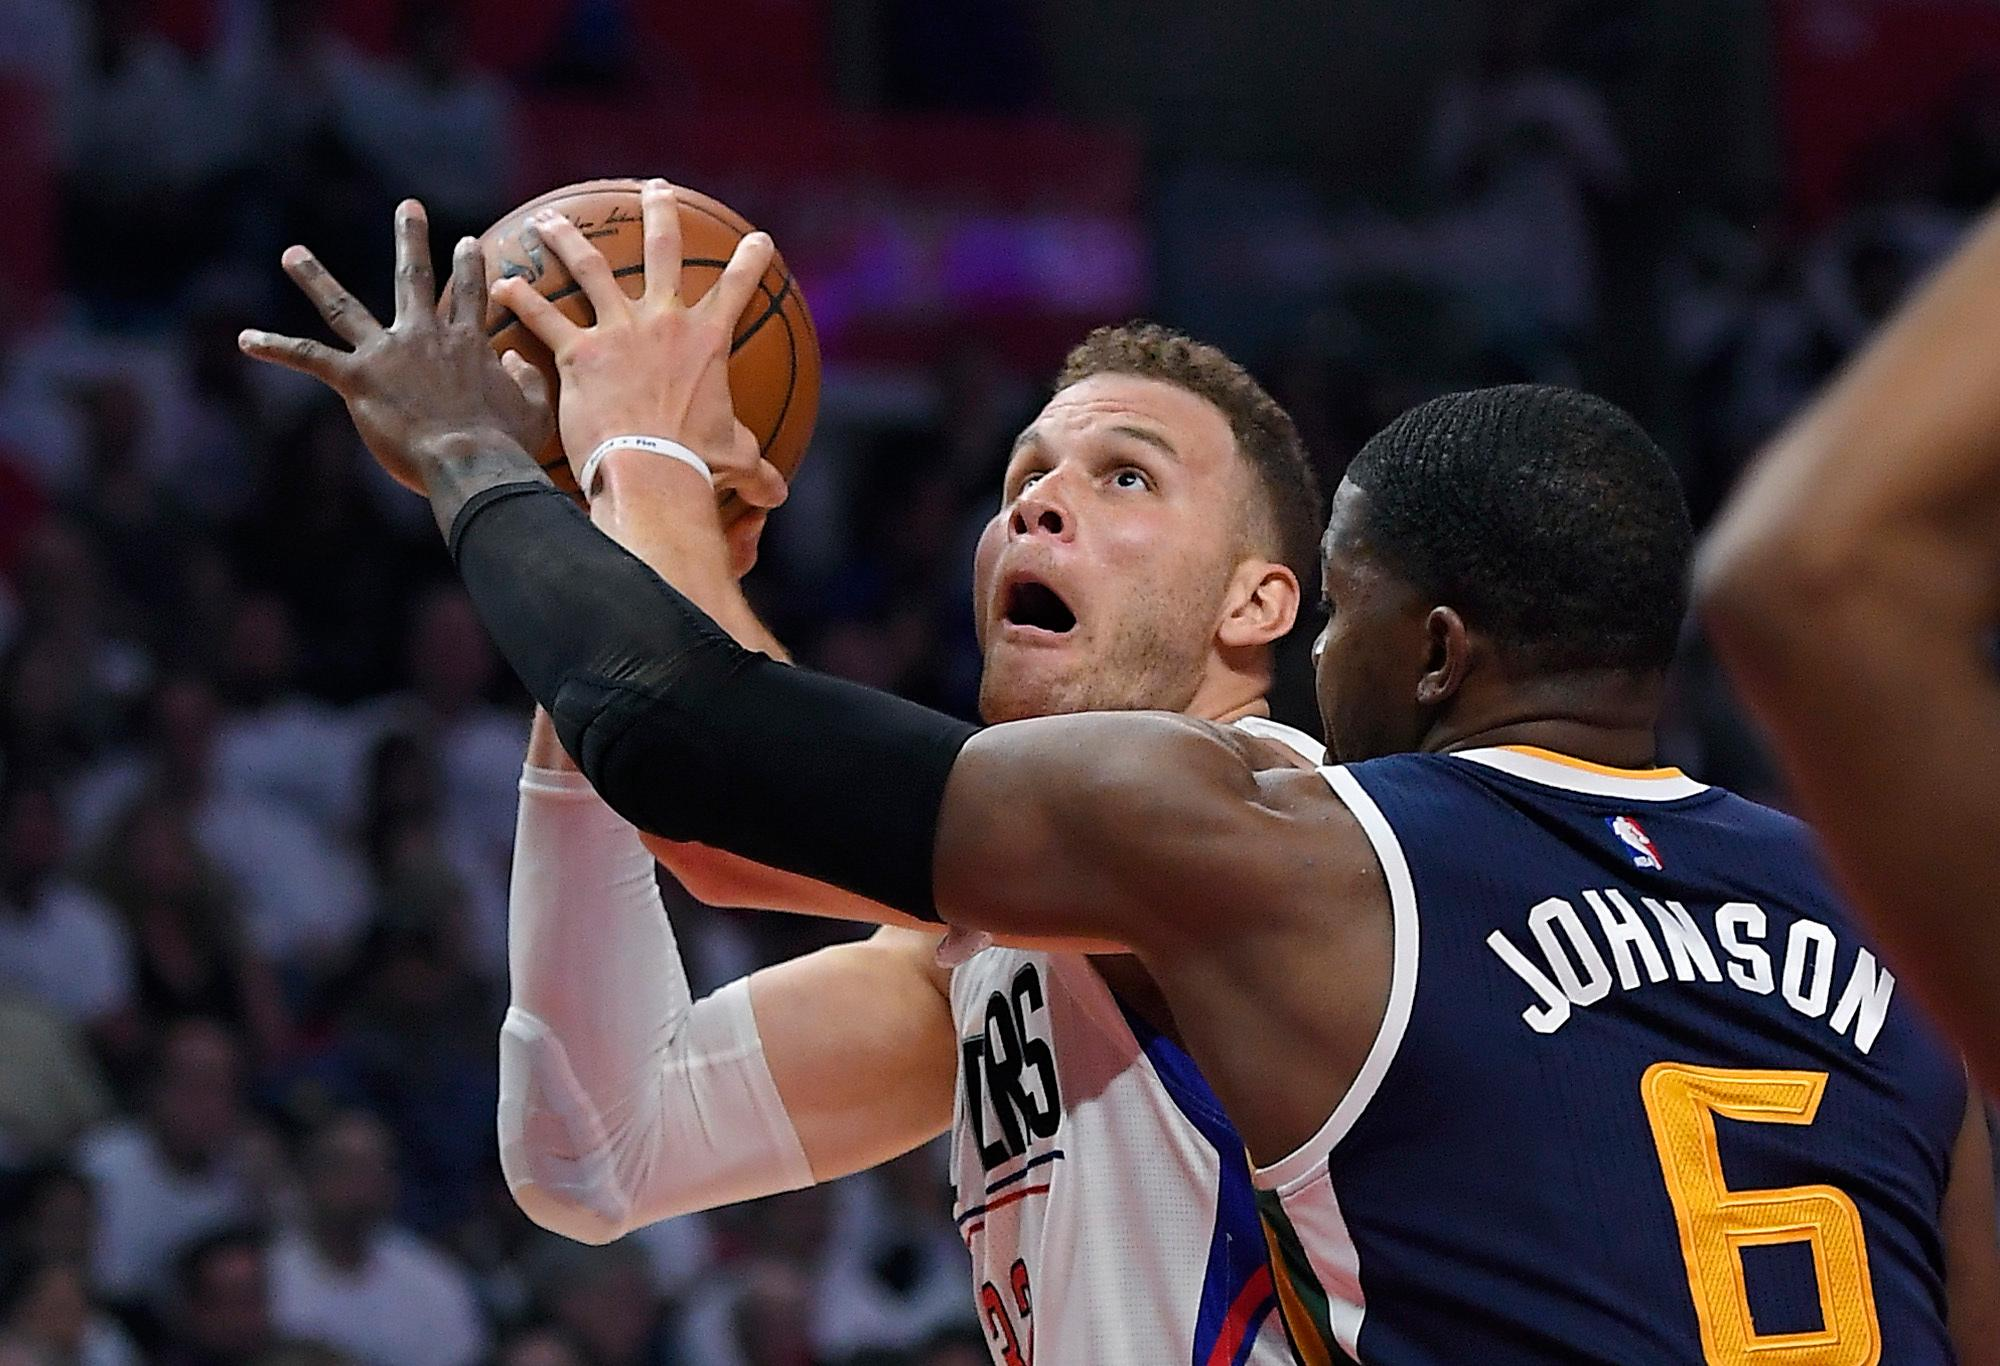 Los Angeles Clippers forward Blake Griffin, left, shoots as Utah Jazz forward Joe Johnson defends during the second half in Game 1 of an NBA basketball first-round playoff series, Saturday, April 15, 2017, in Los Angeles. The Jazz won 97-95. (AP Photo/Mark J. Terrill)